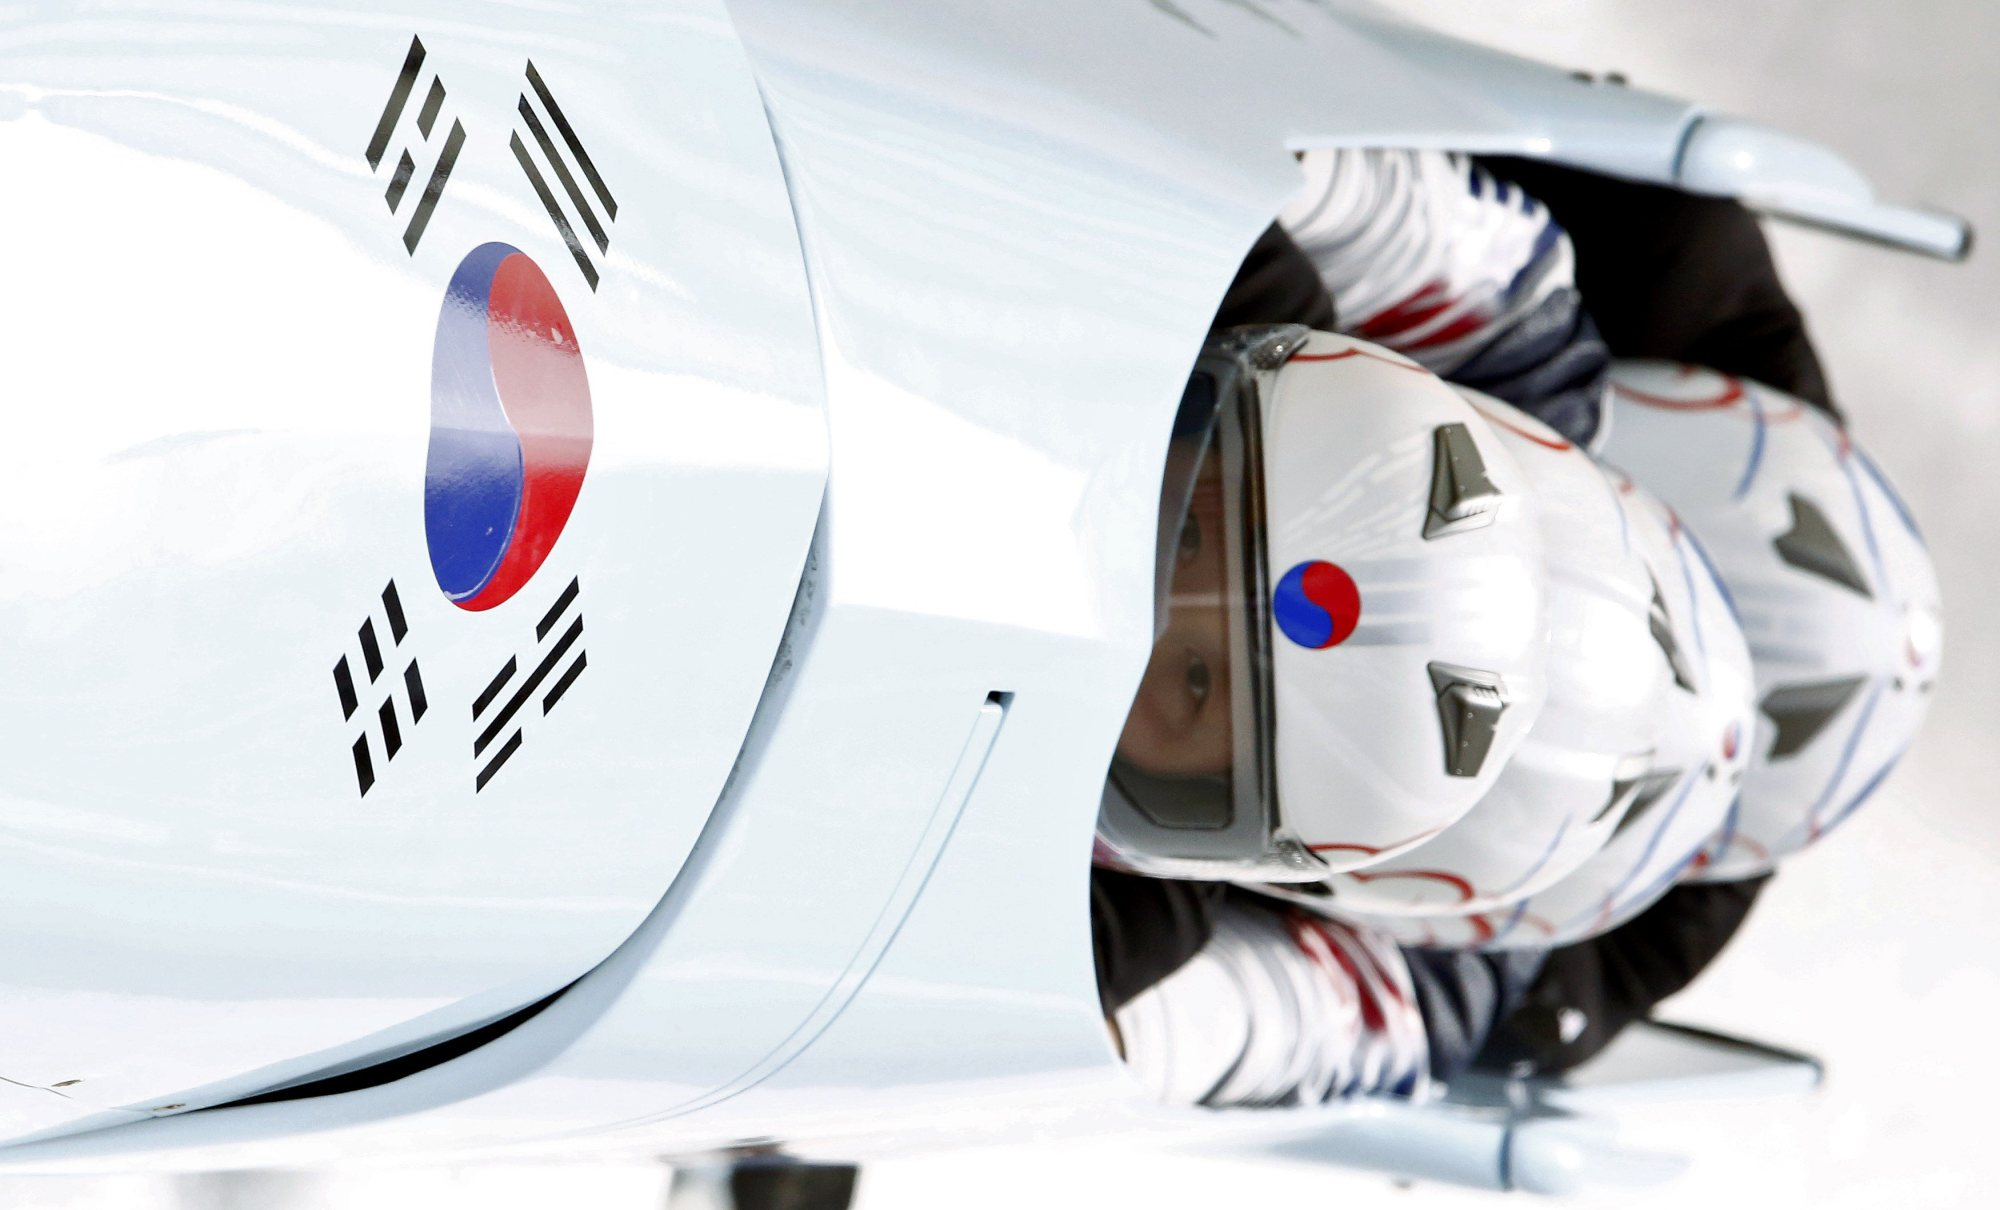 South Korea's pilot Kim Dong-hyun (front) and his teammates speed down the track during a four-man bobsleigh training session at the Sanki Sliding Center.